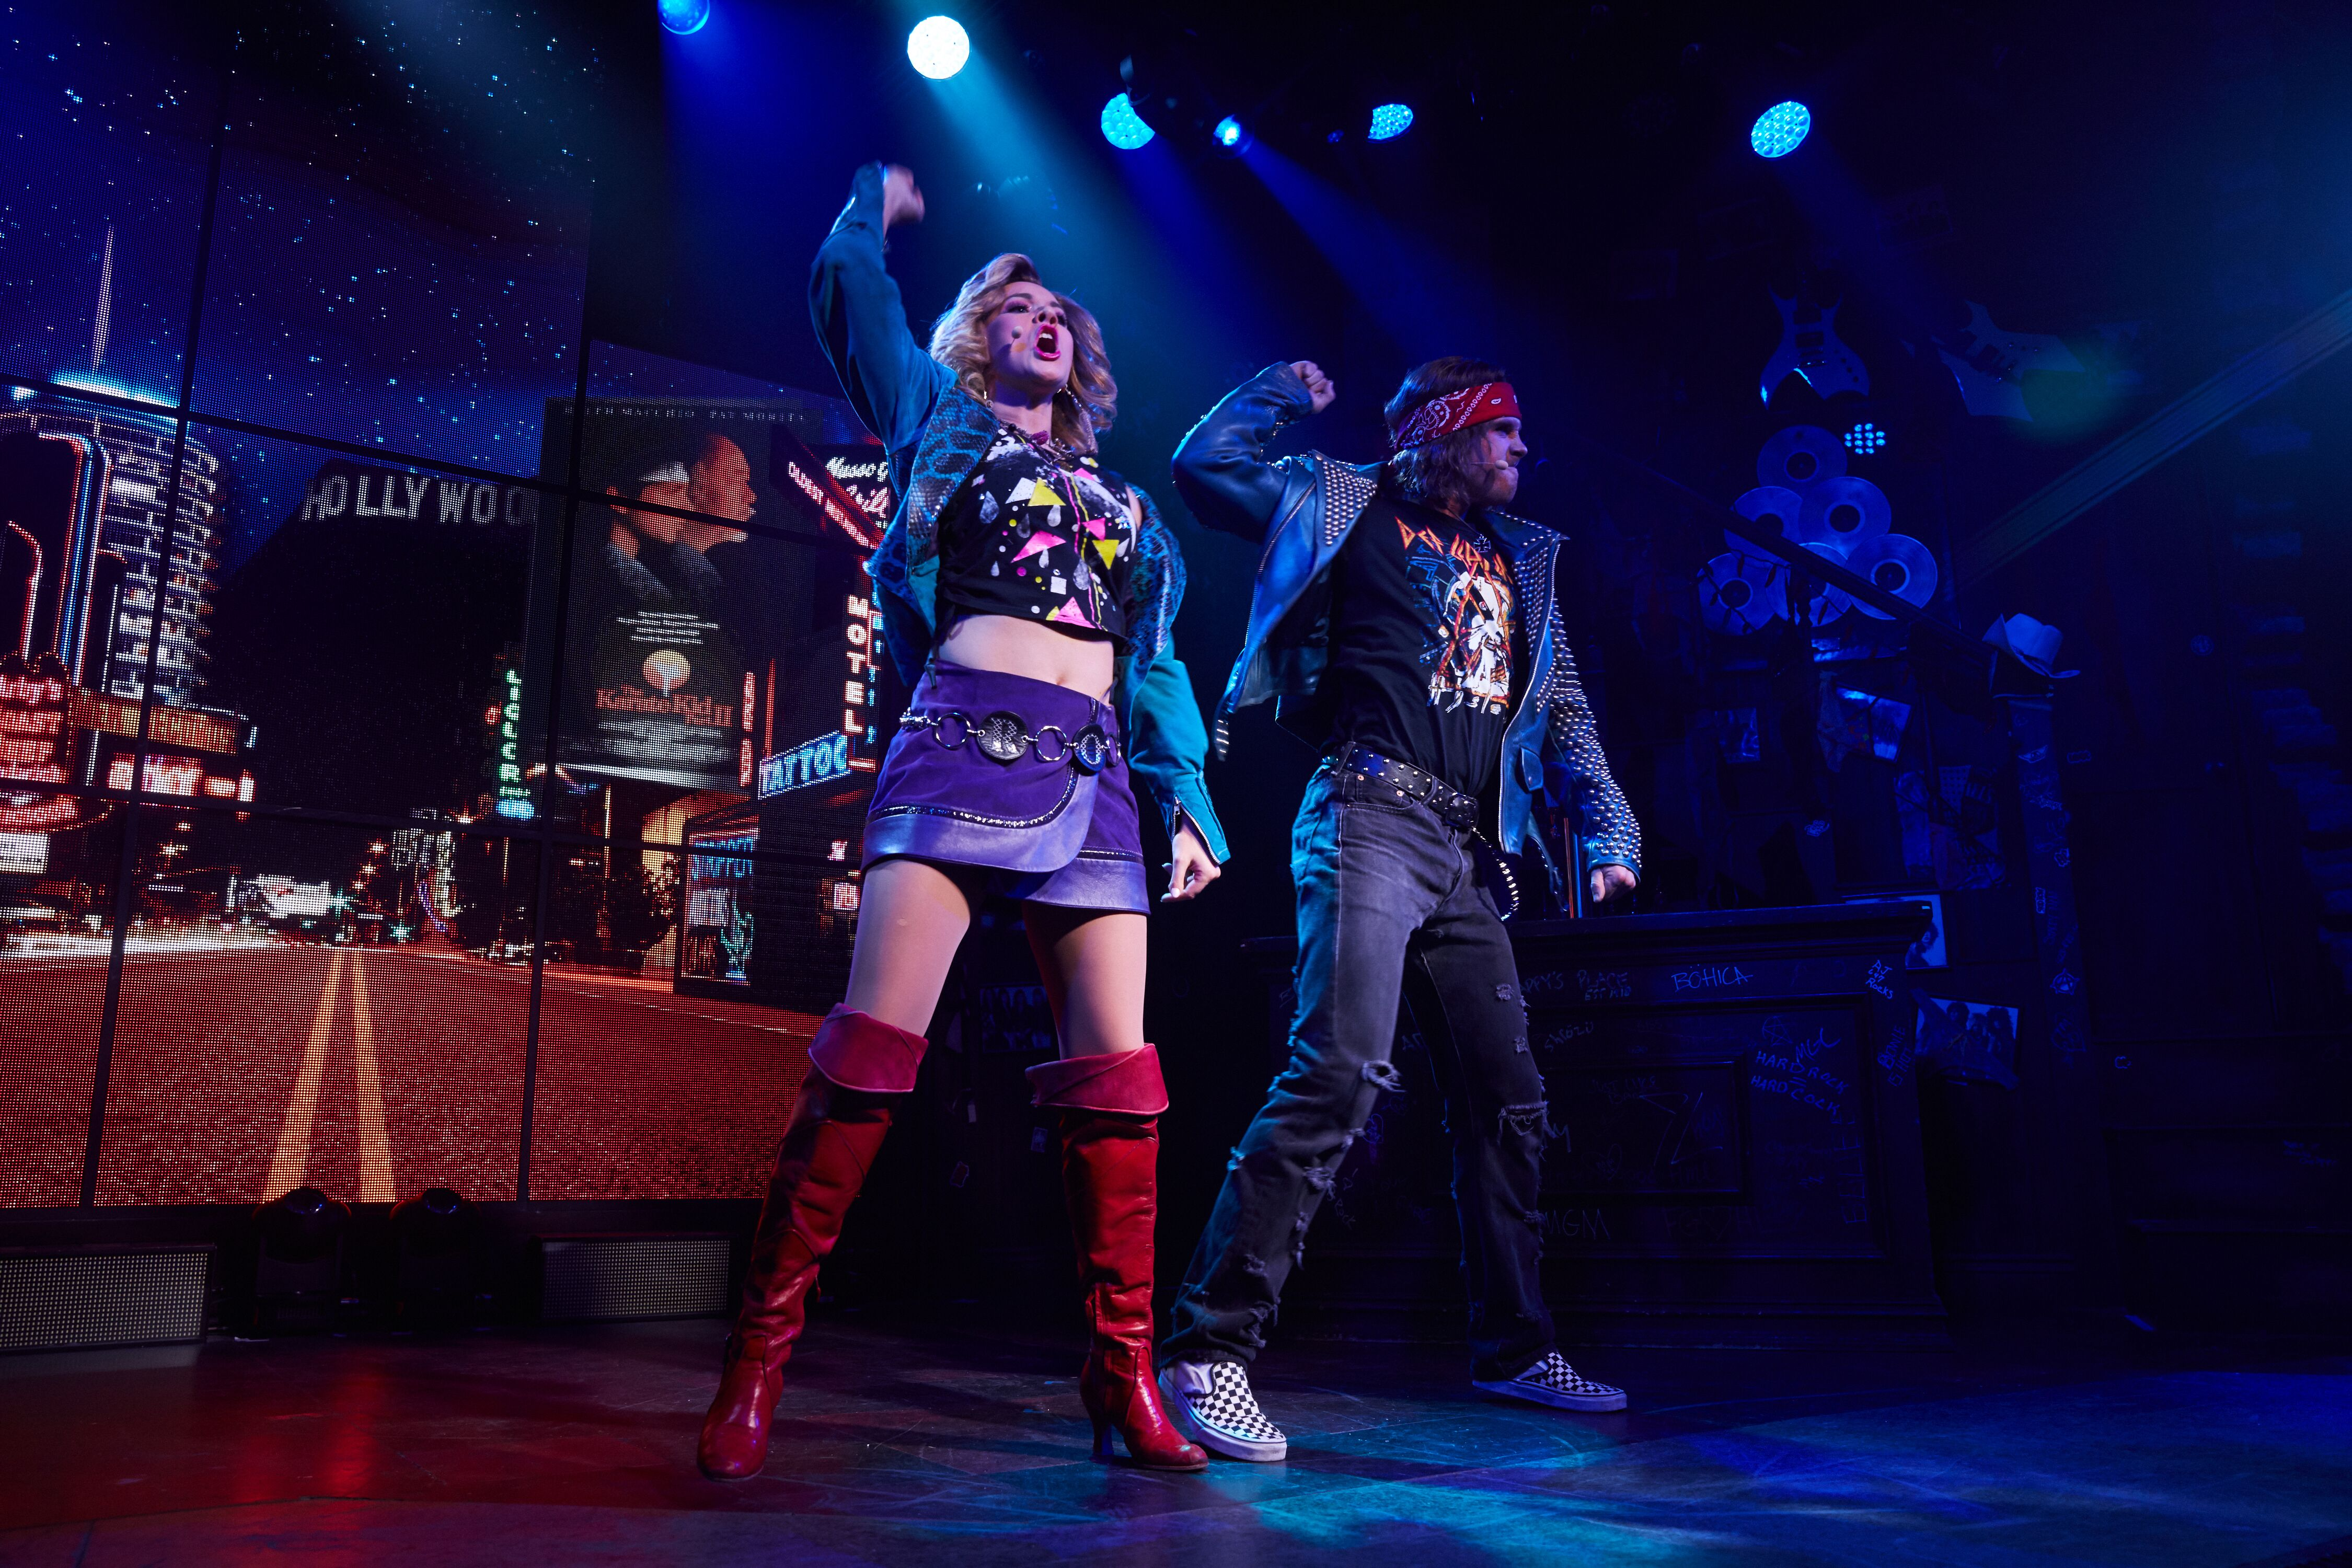 """Rock of Ages"" at the Bourbon Room in Hollywood, CA"